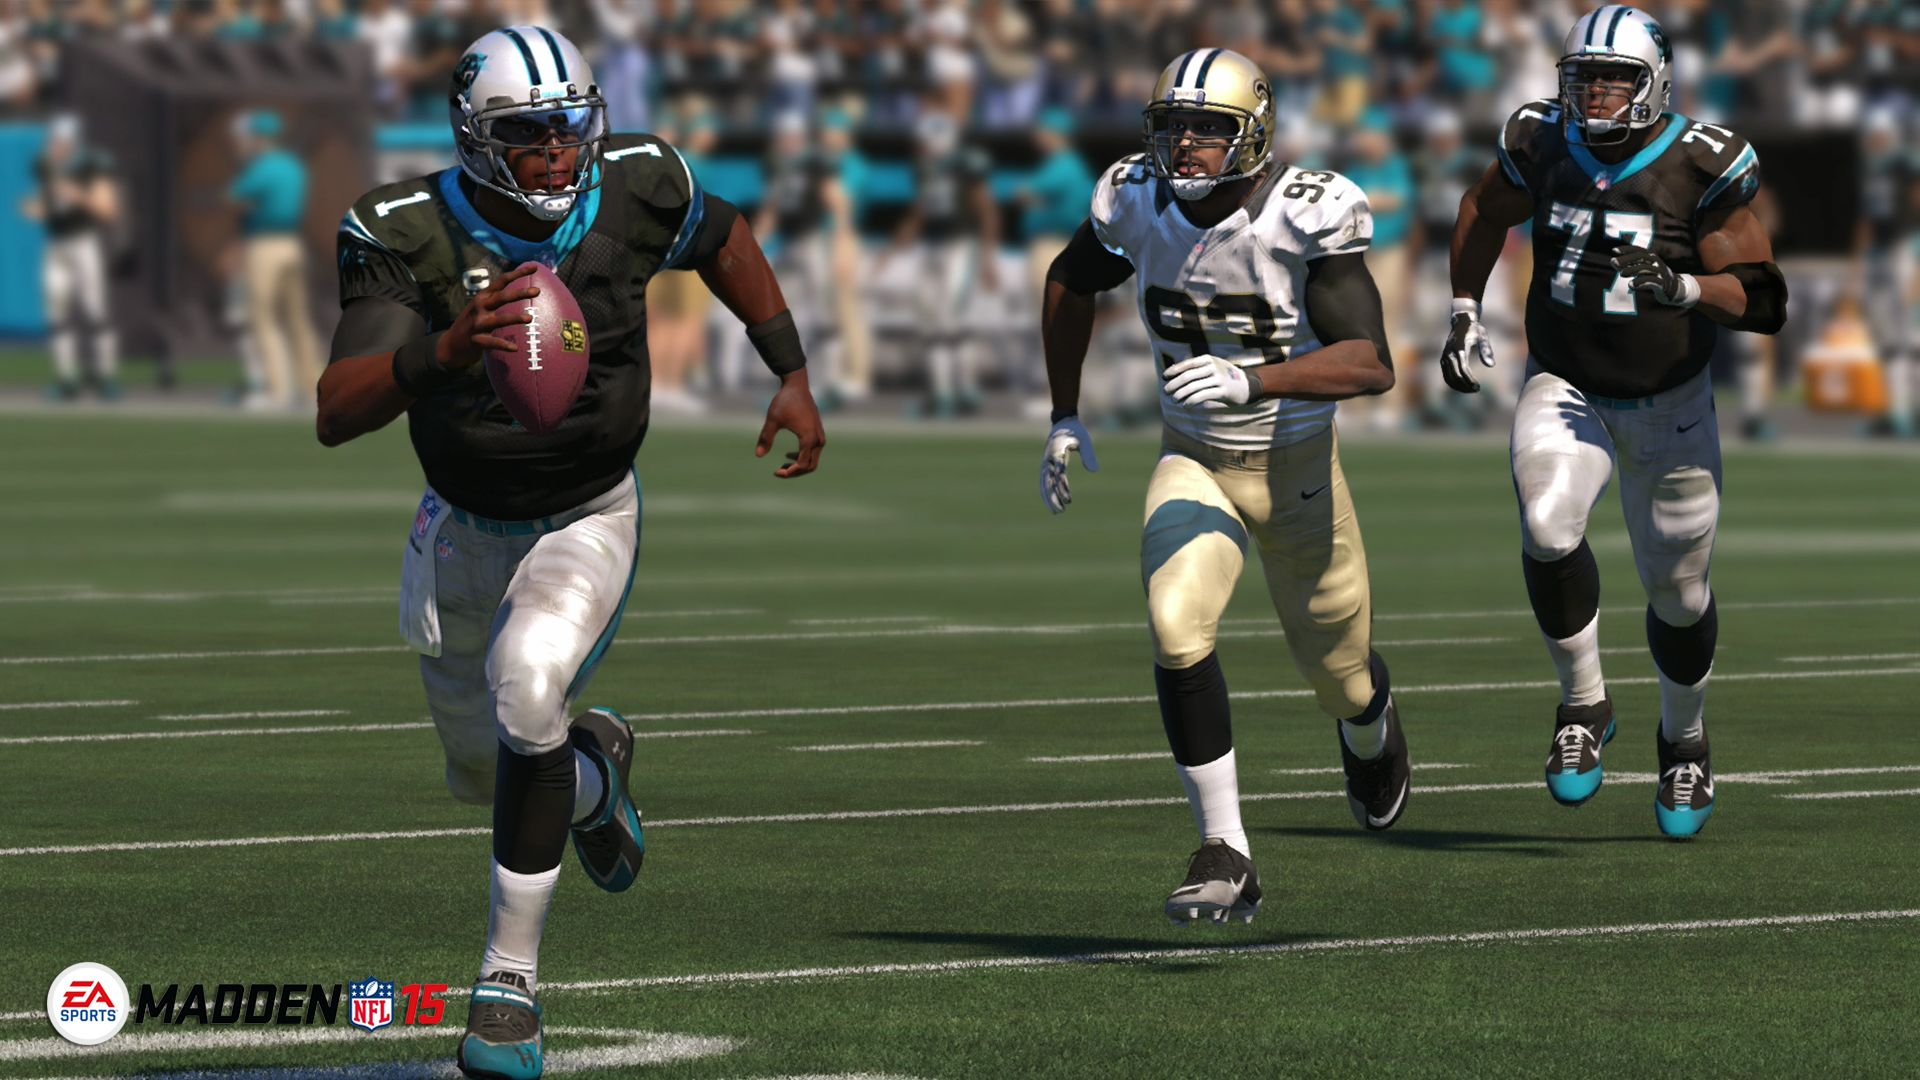 Madden Nfl 15 Screenshots Image 15044 New Game Network